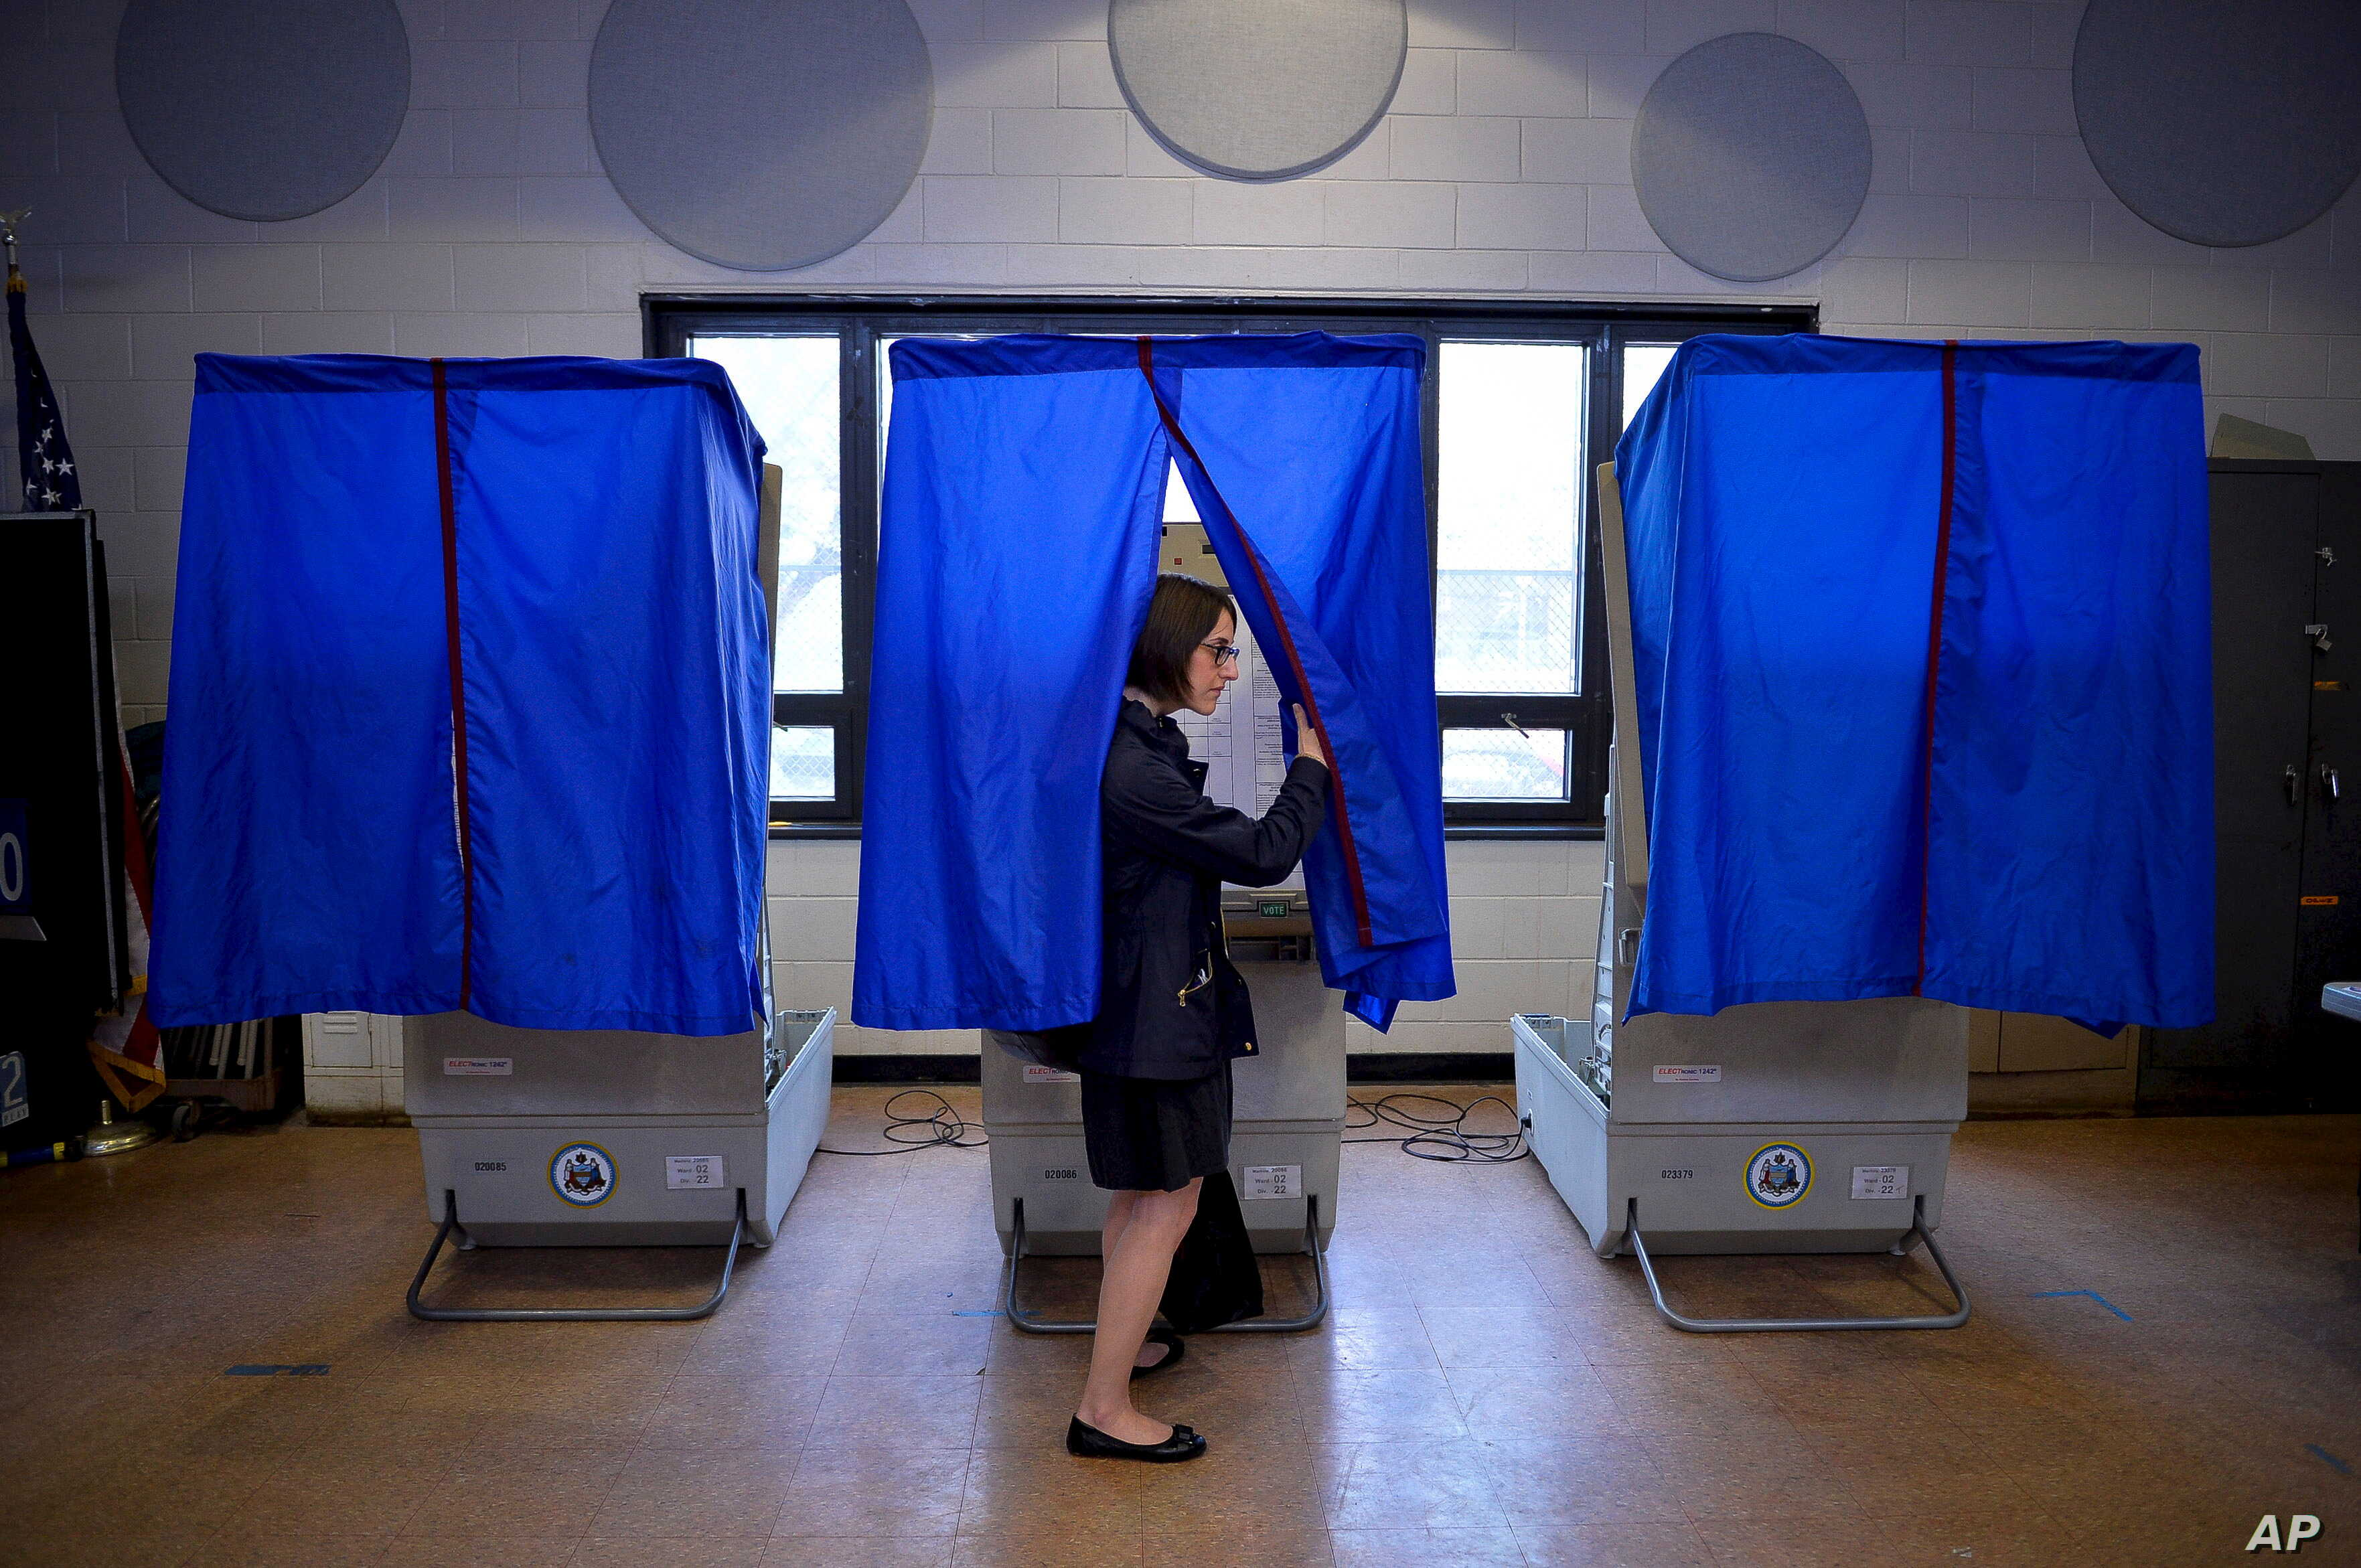 FILE - A voter leaves the booth after casting her ballot in the Pennsylvania primary at a polling place in Philadelphia, Pennsylvania, U.S., April 26, 2016.